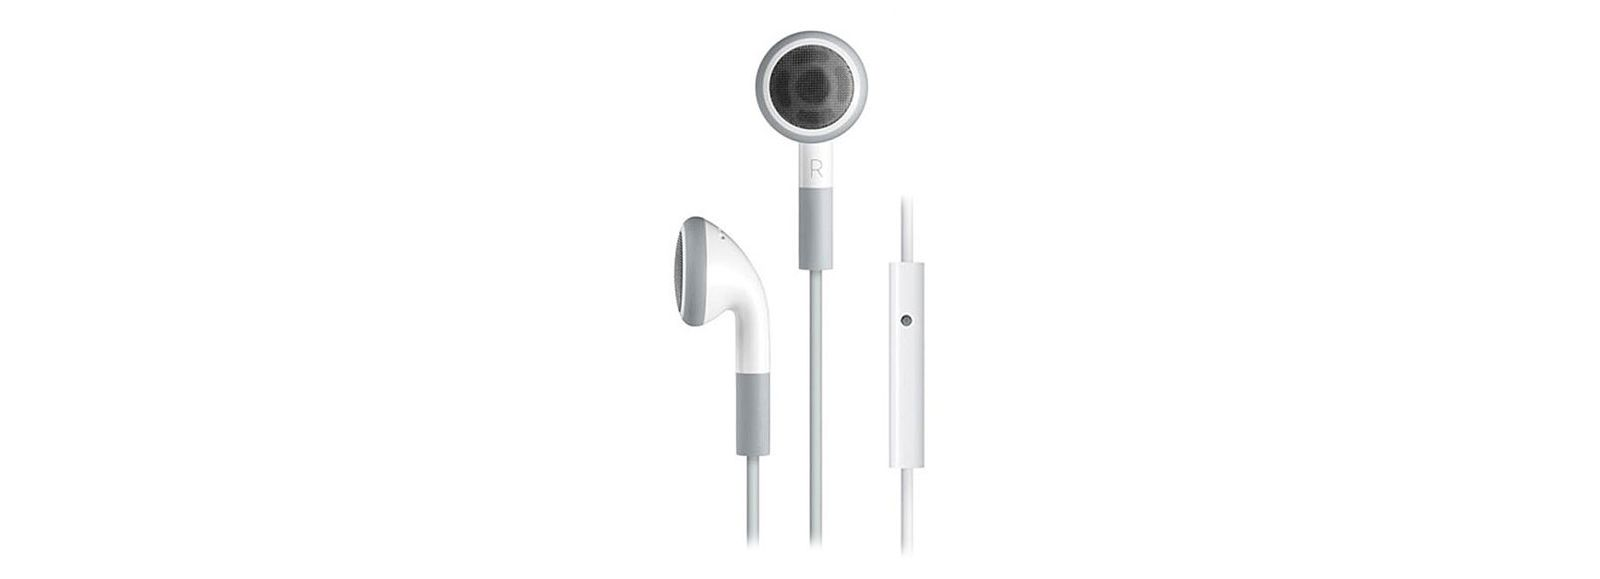 Can I Use Headphones With Iphone